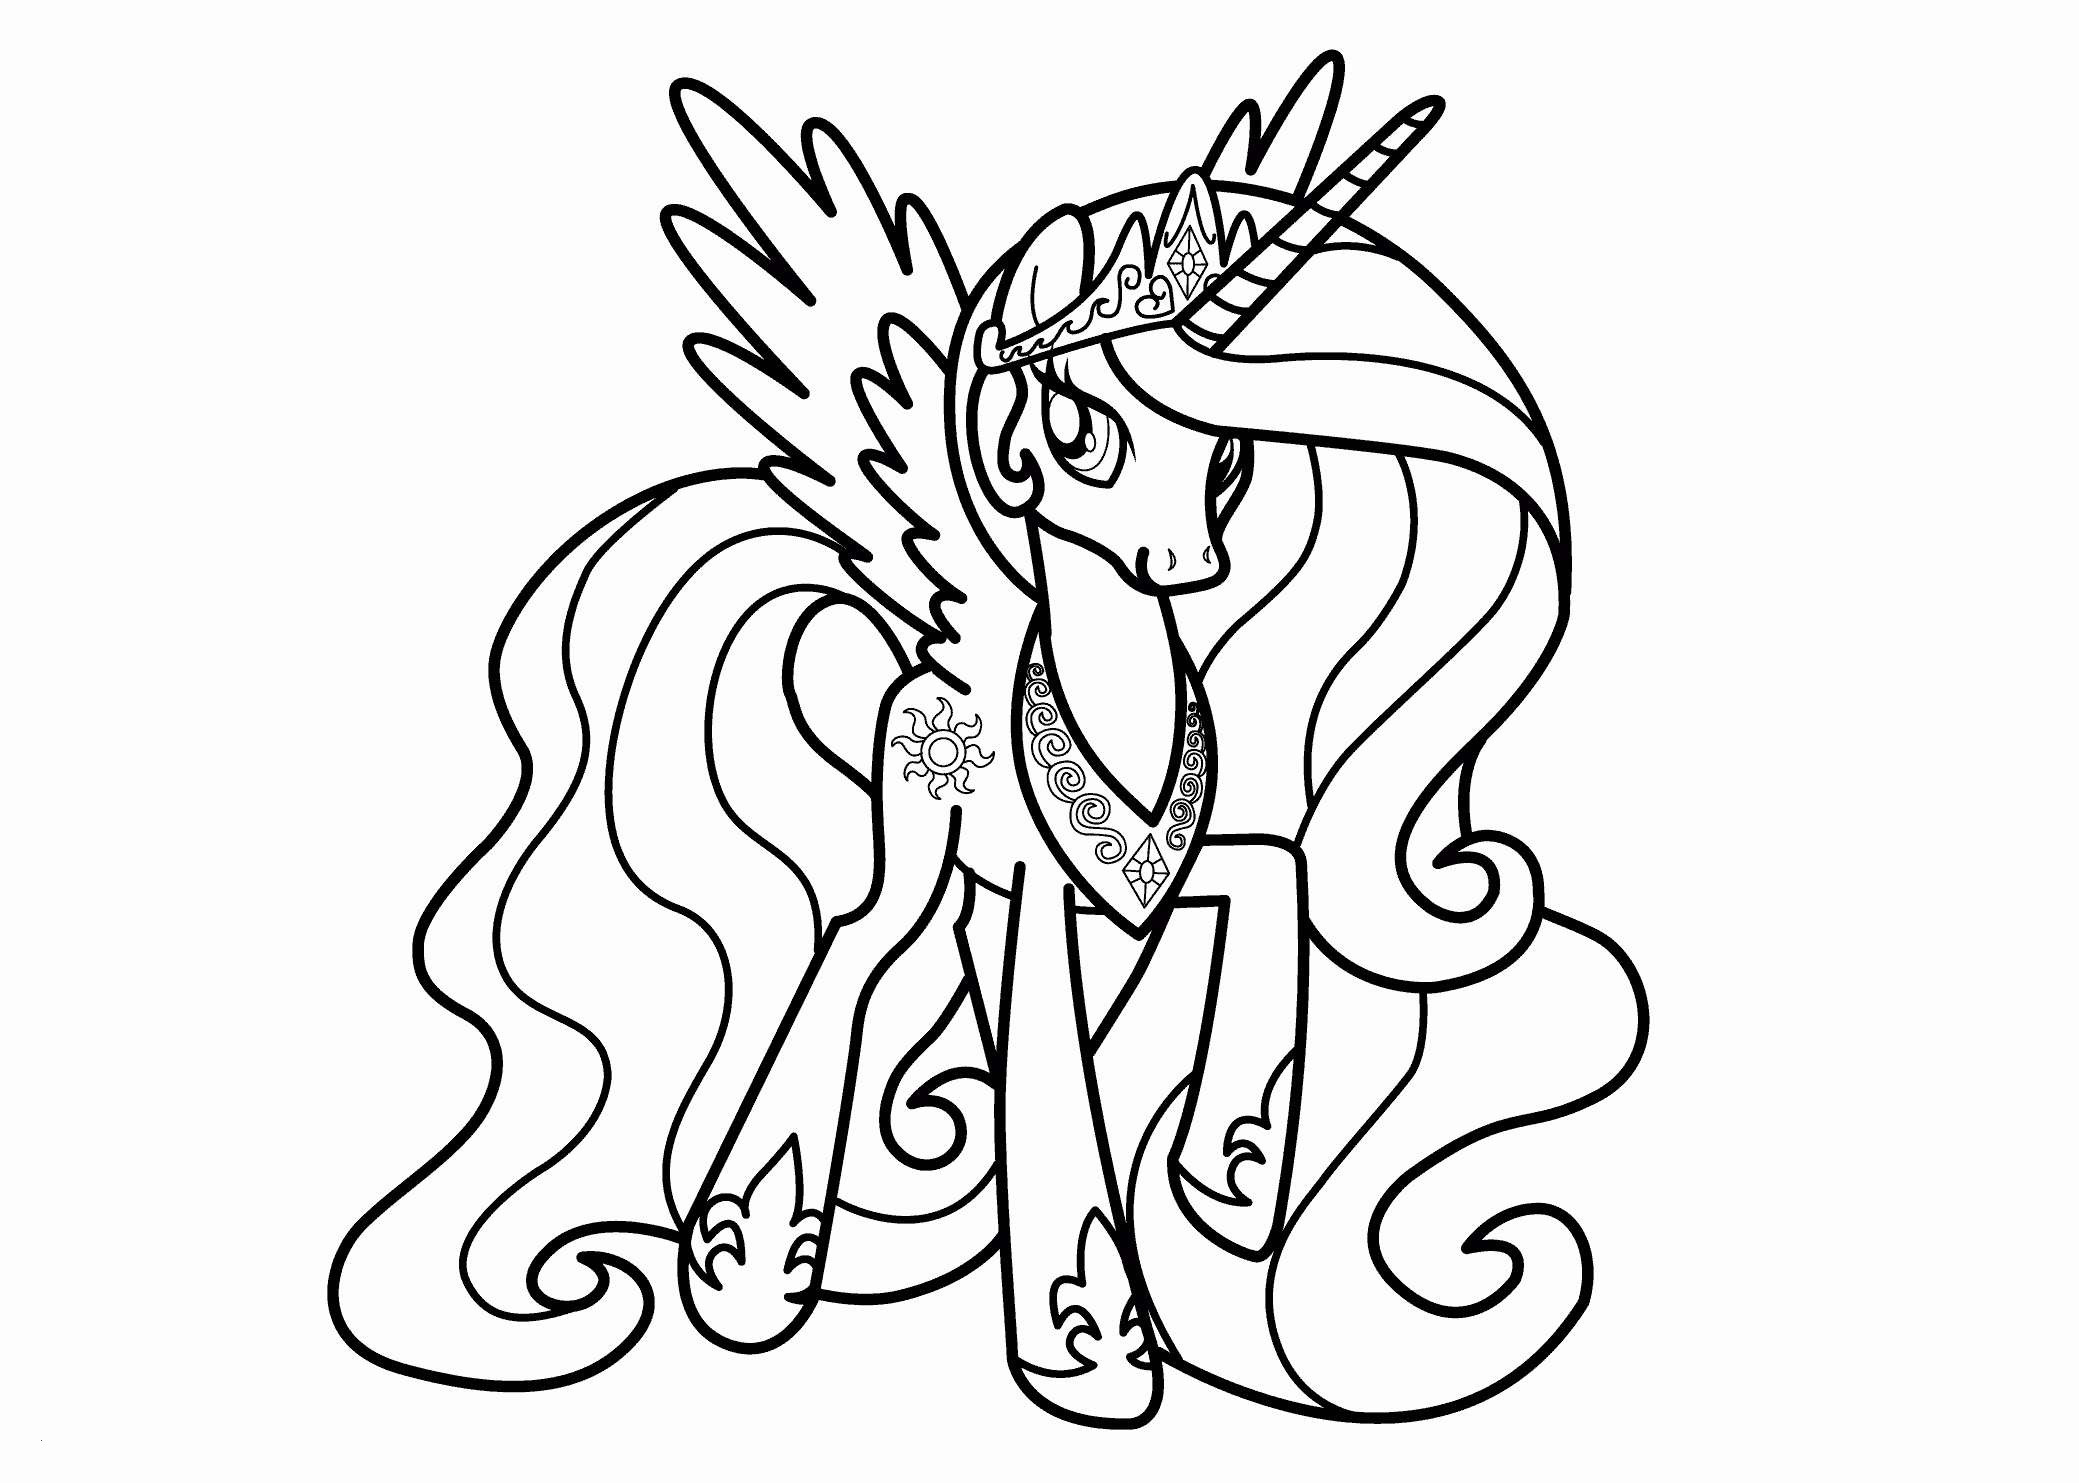 Ausmalbilder My Little Pony Equestria Genial Baby Princess Celestia Coloring Page Free Coloring Sheets Elegant Fotografieren